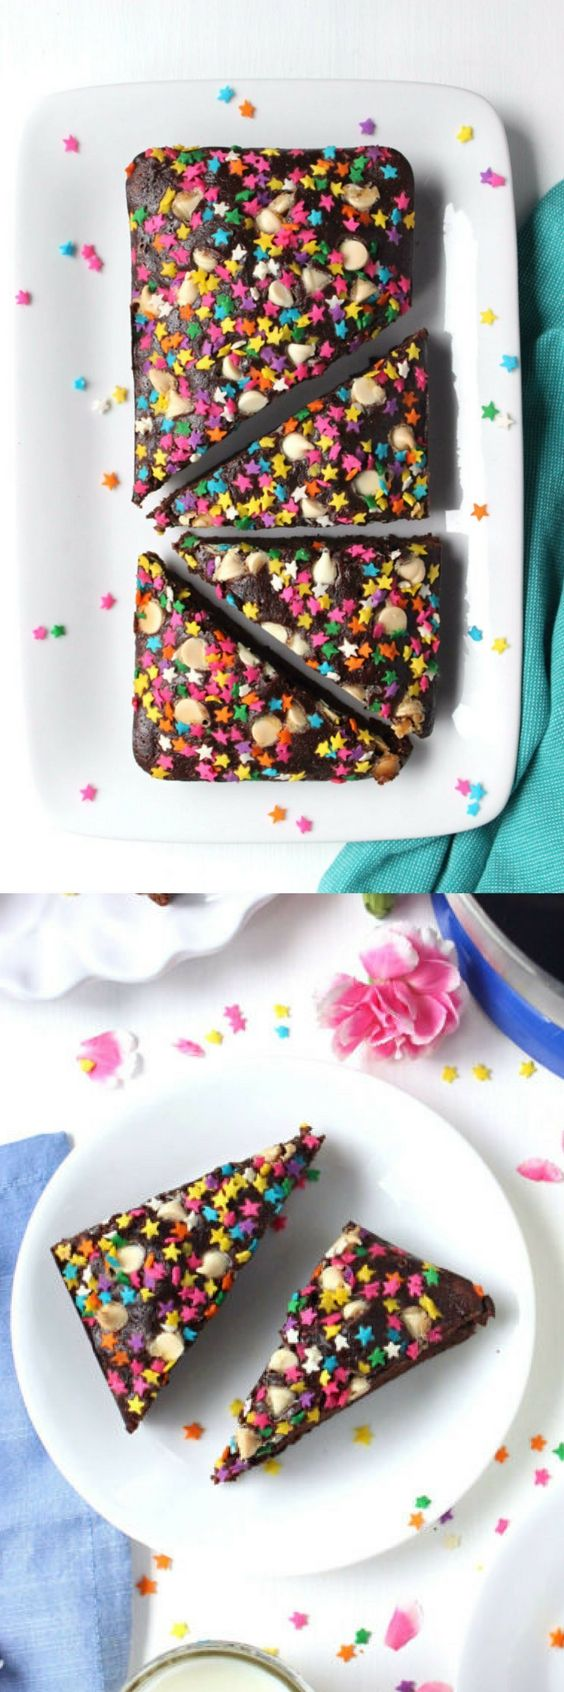 Made with NO butter and baked in just 25 minutes, it doesn't get much easier (or healthier!) than these Skinny + Fudgy Greek Yogurt Brownies for two. | reduced fat, healthy dessert, small batch brownies, chocolate, sprinkles